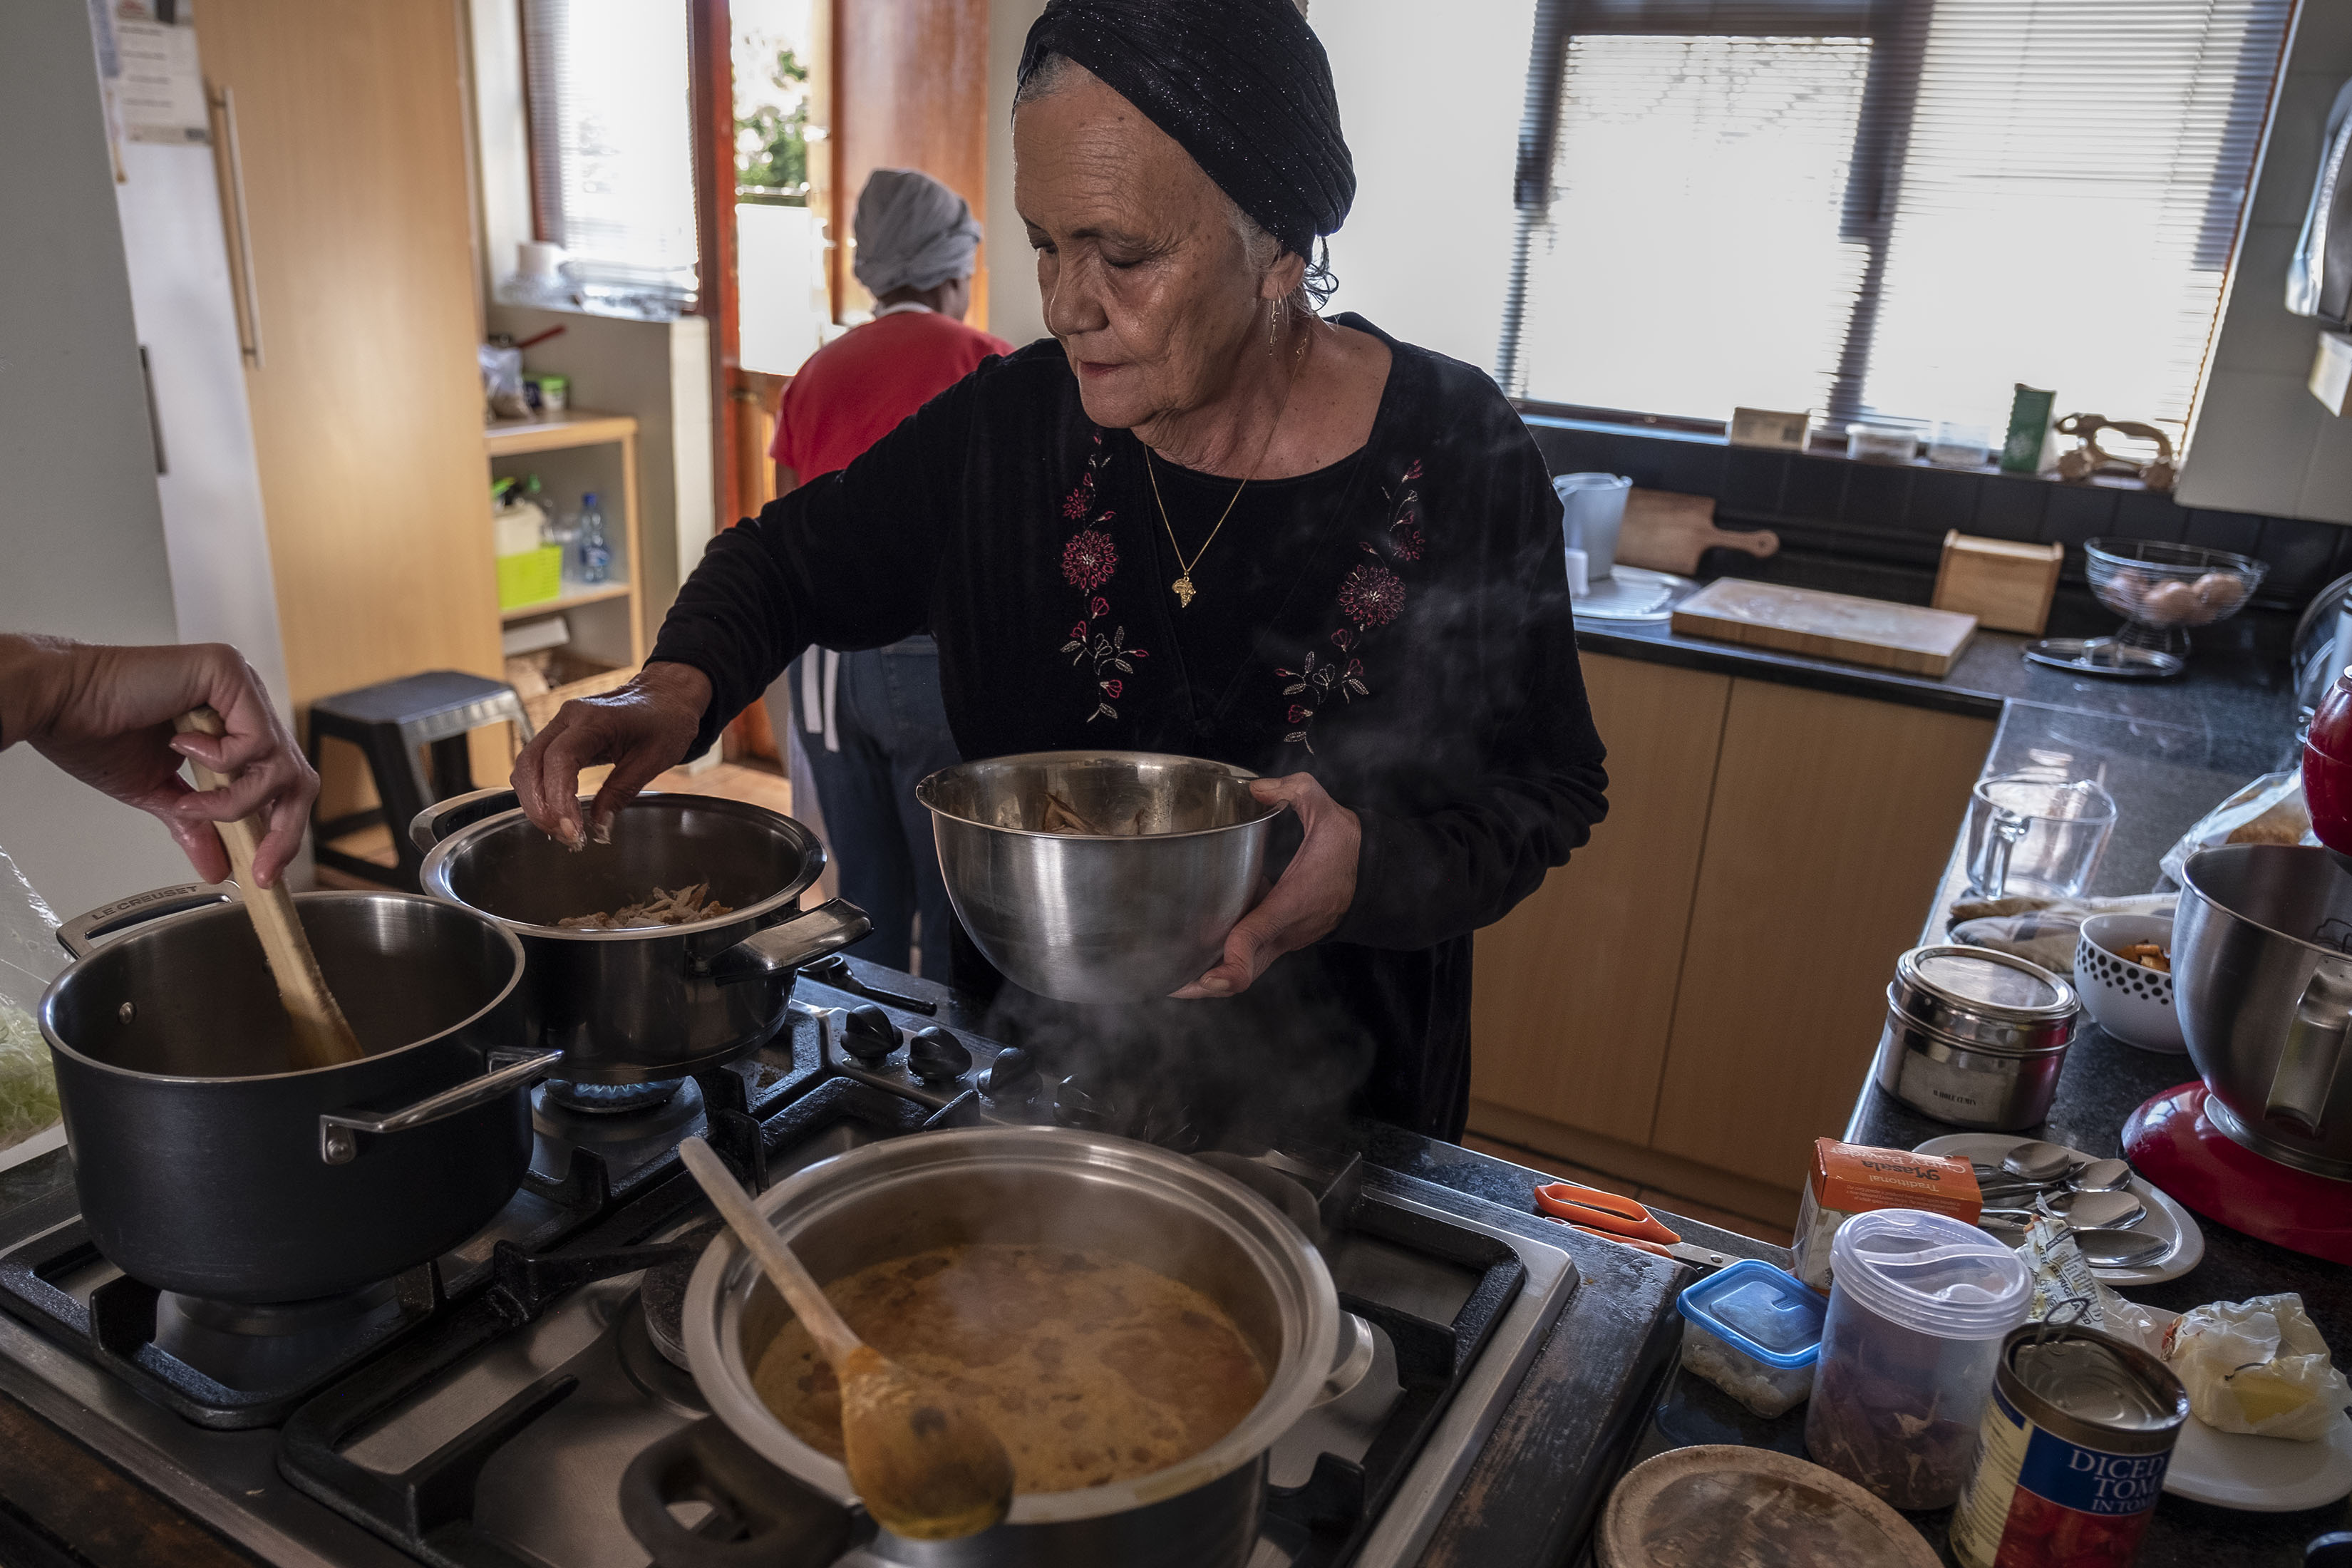 3 September 2019: Cass Abrahams cooked for former president Nelson Mandela and found it memorable that he came into the kitchen to thank the staff.